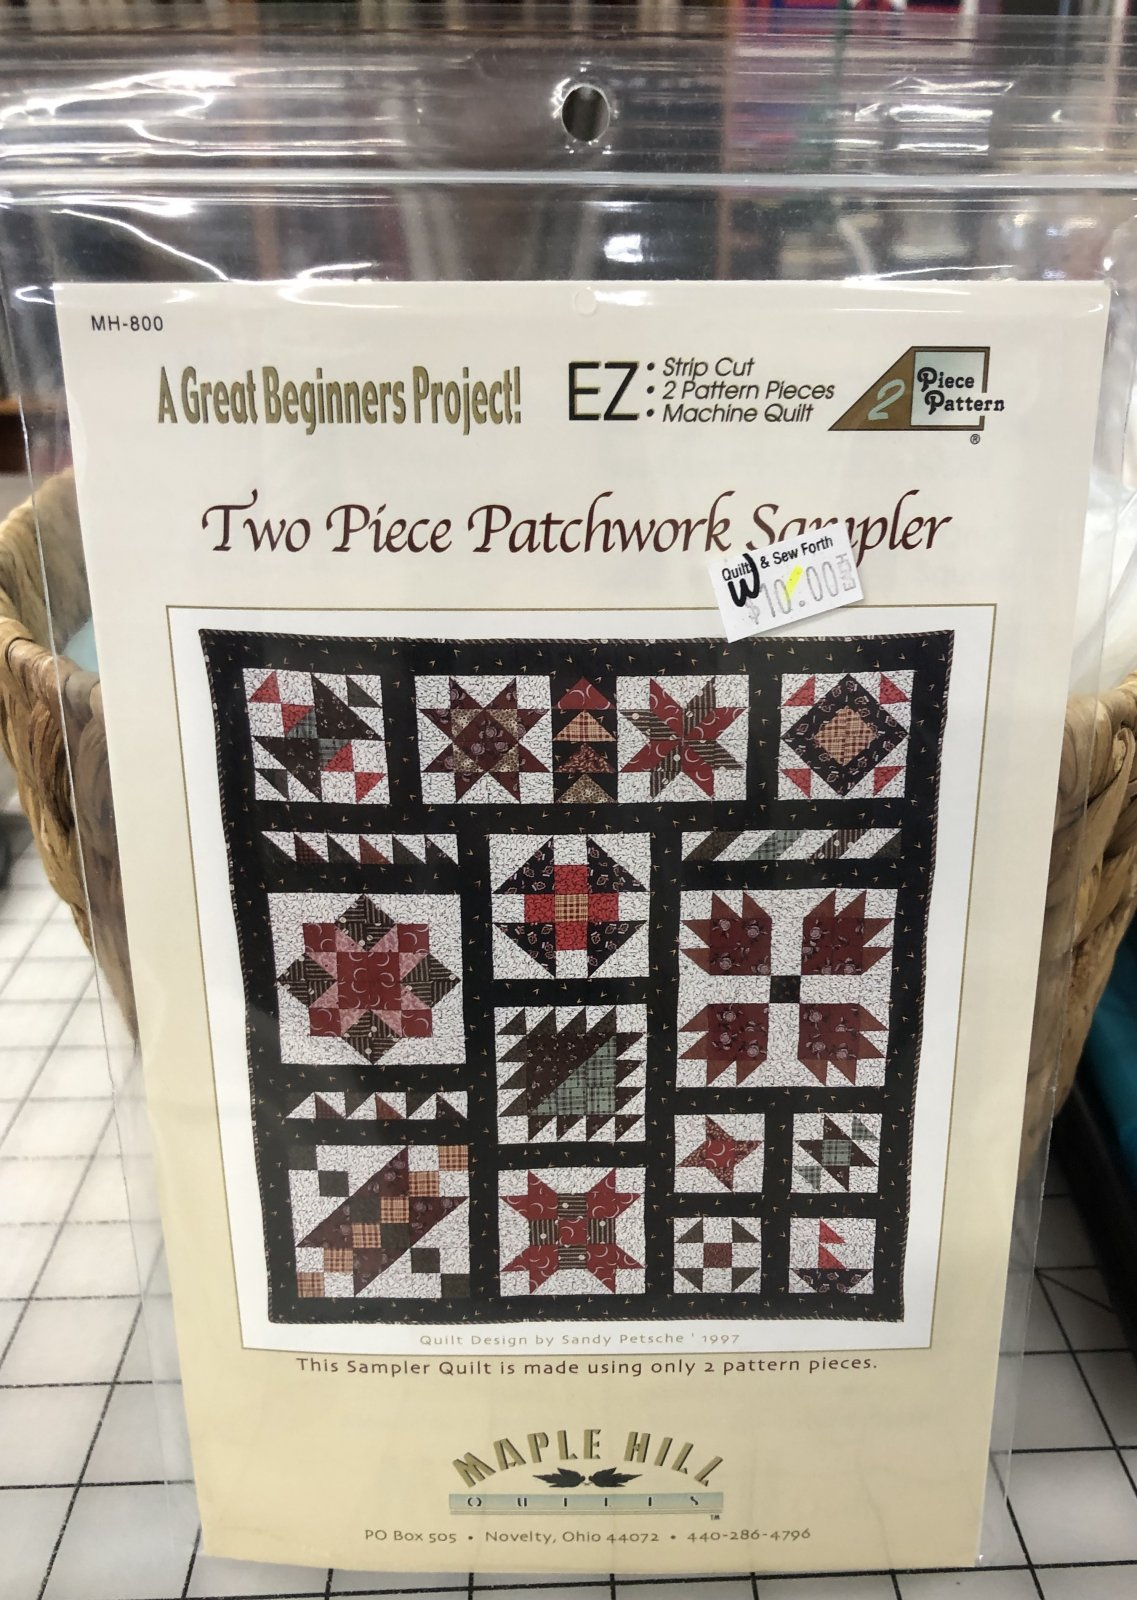 Two Piece Patchwork Sampler